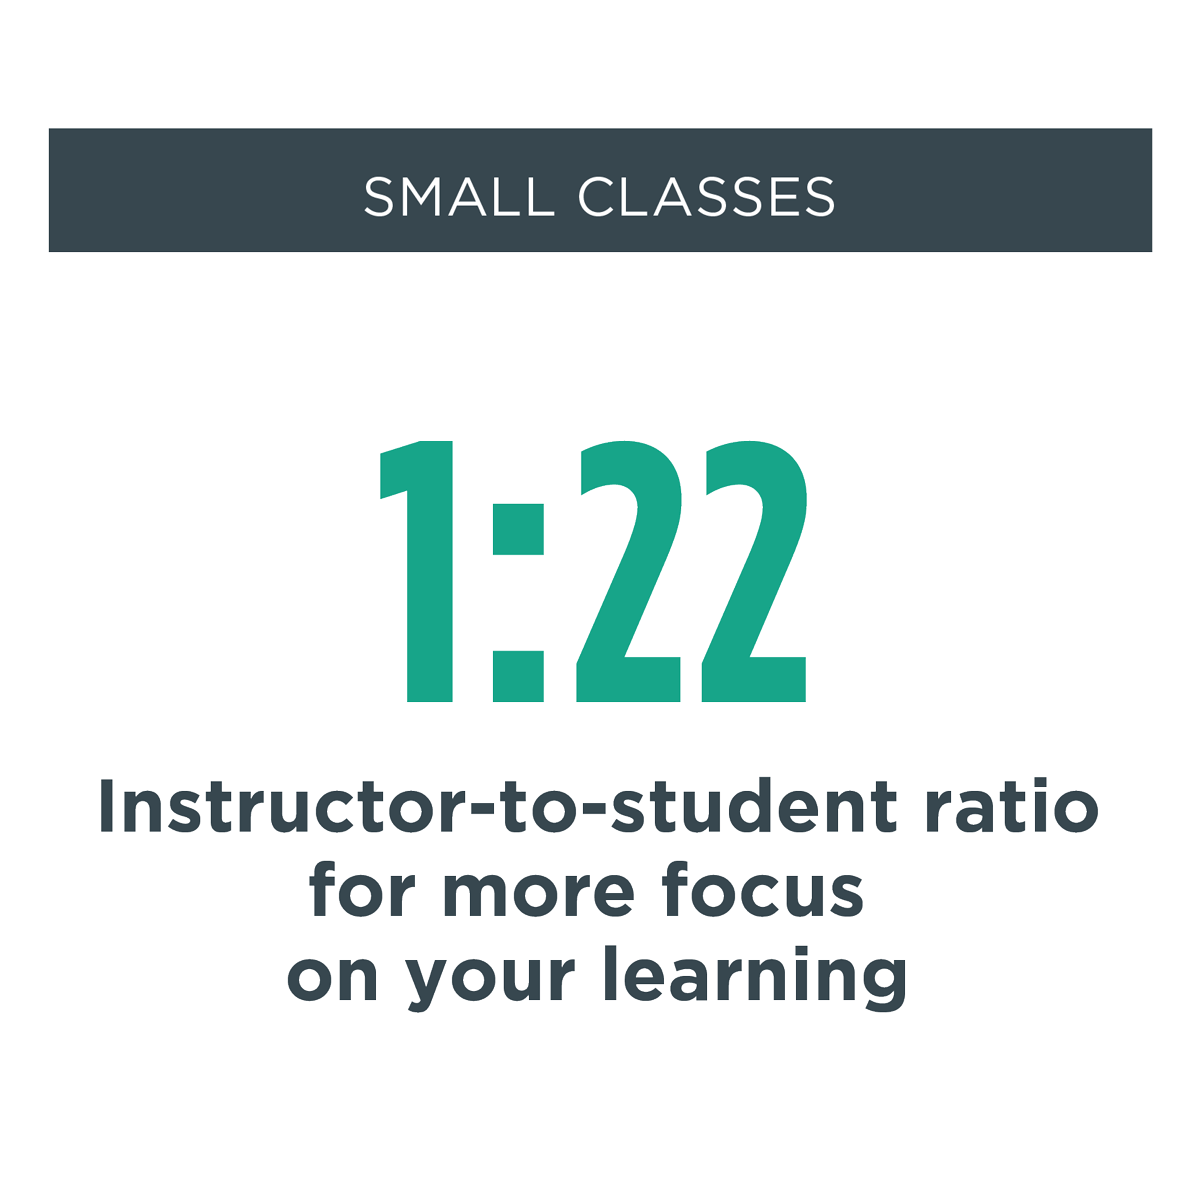 small classes - Instructor-to-student ratio provides more focus on your learning